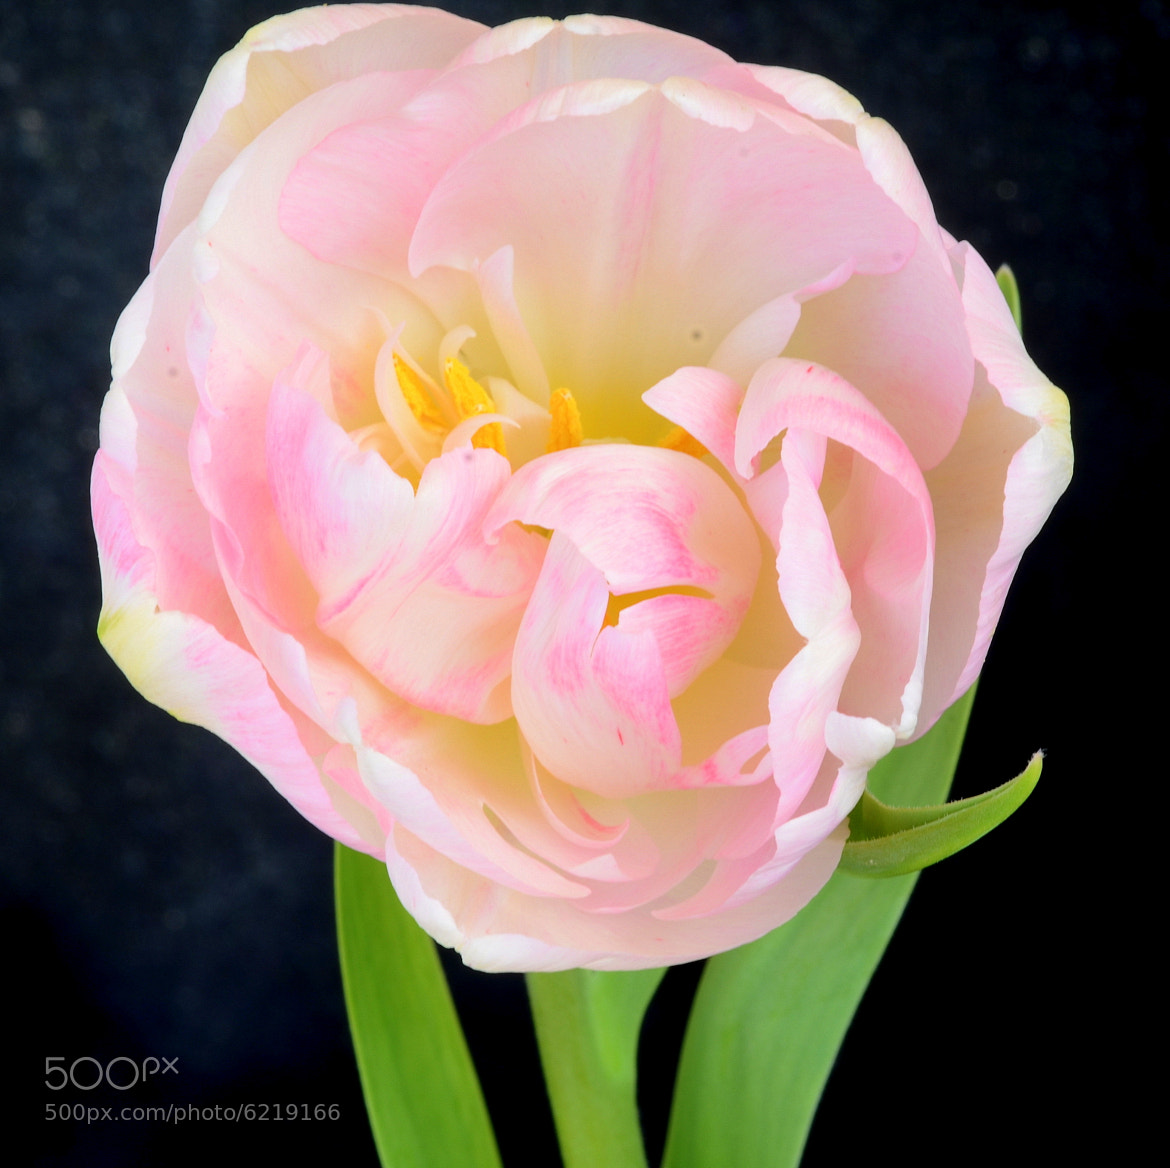 Photograph Tulip_Double_Pink_2594 by Philippe Arpels on 500px